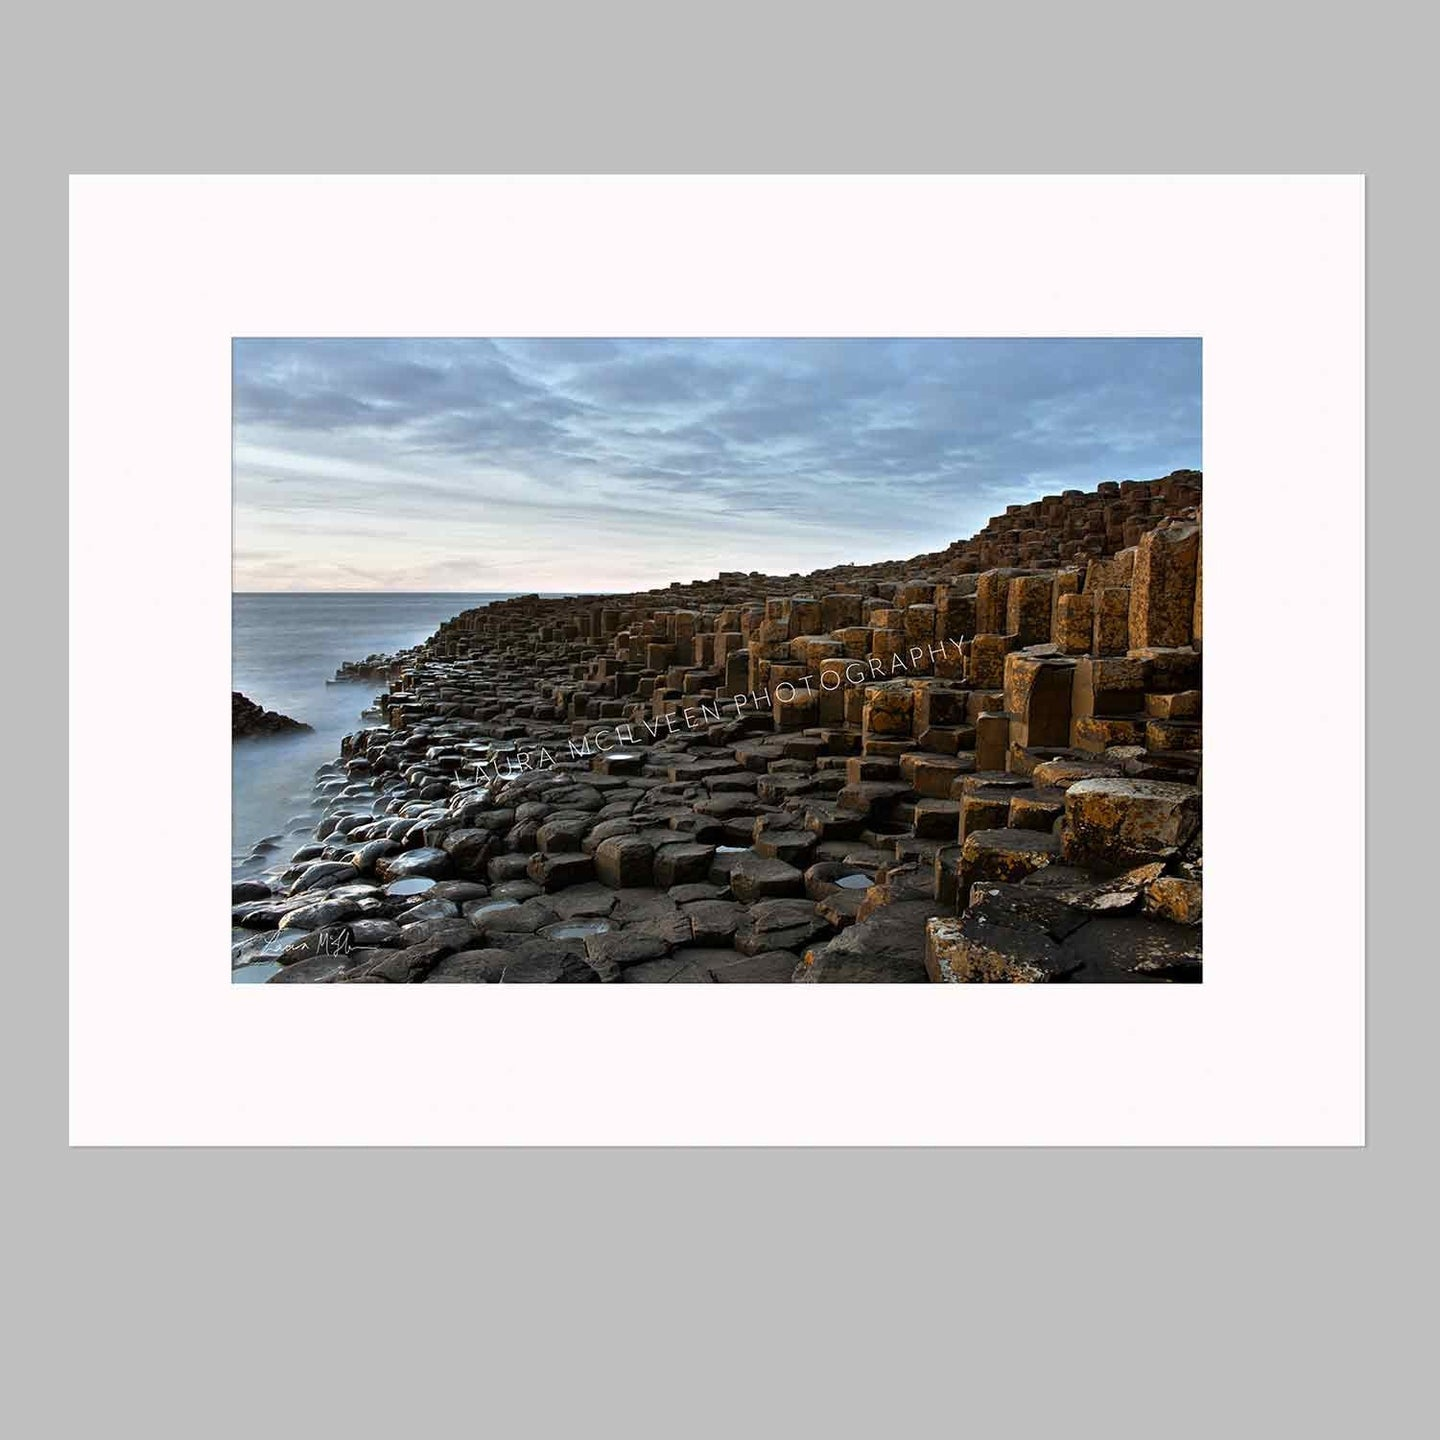 'Blue Hour At The Stones', The Giant's Causeway